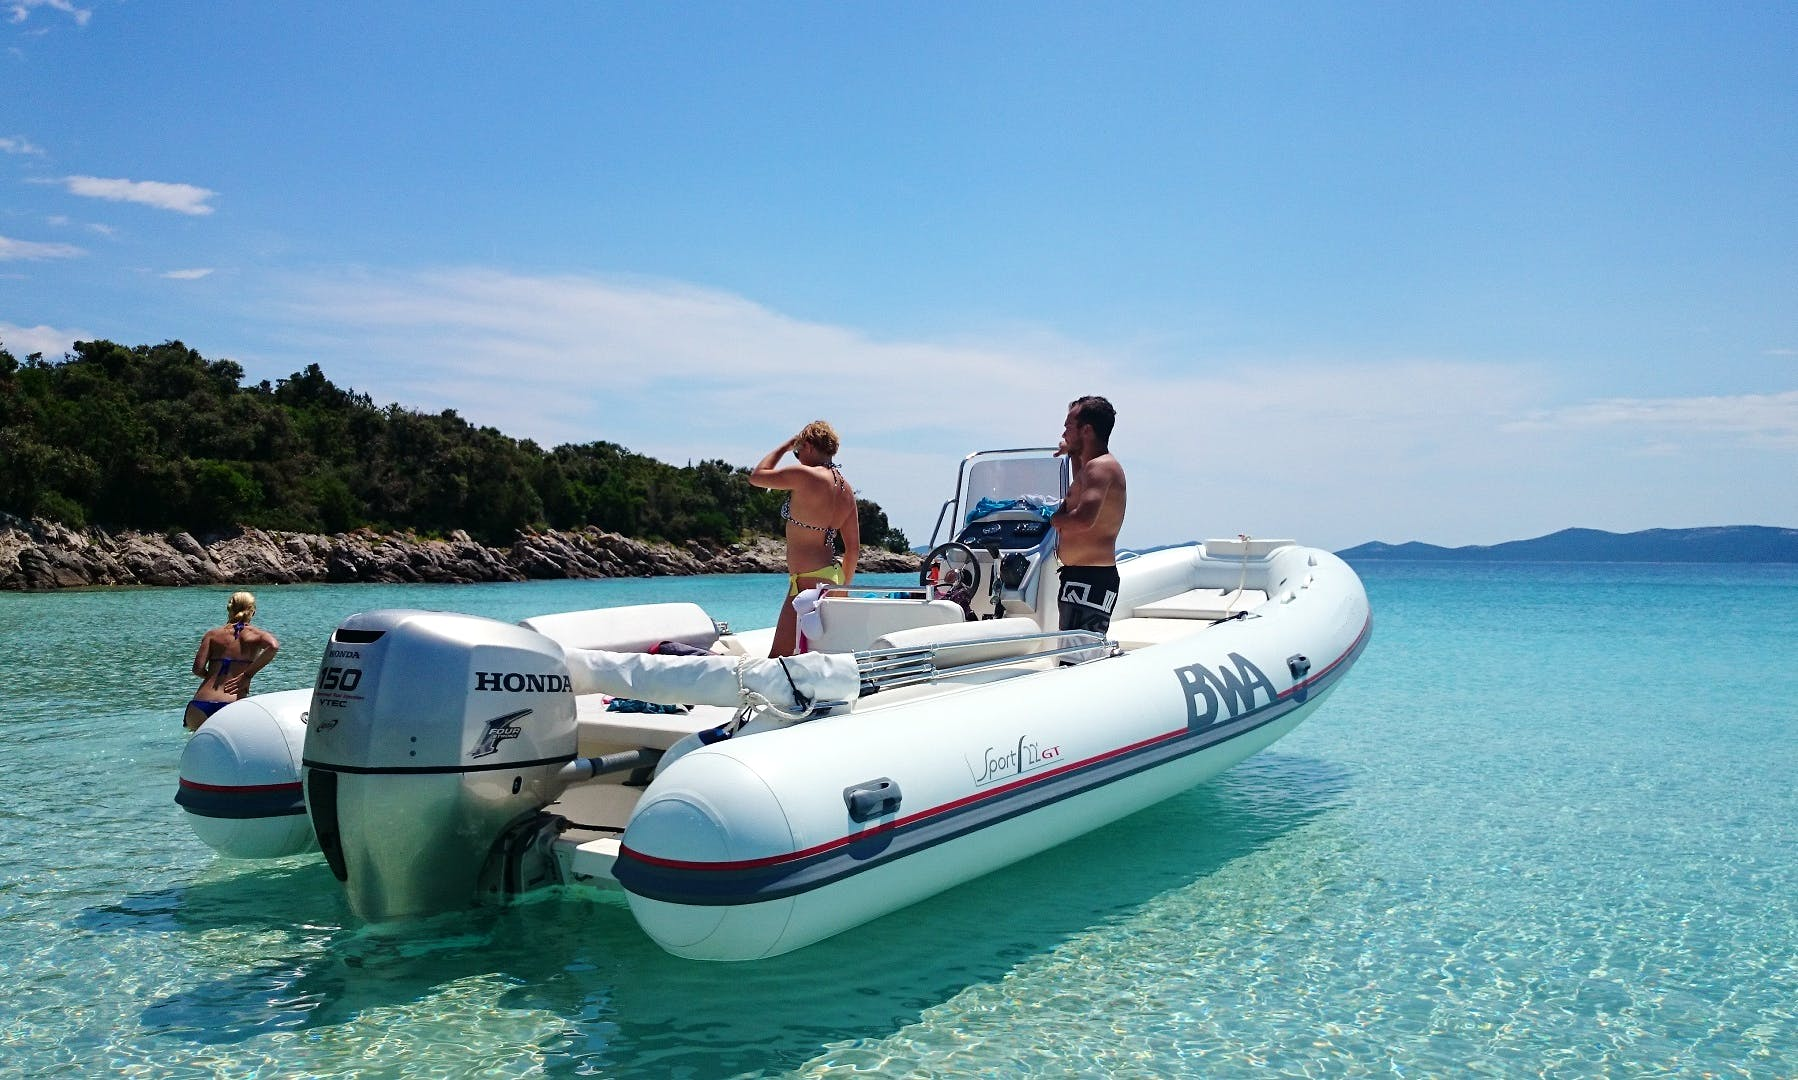 Rent this RIB in Zadar, Croatia for Summer Boating Fun